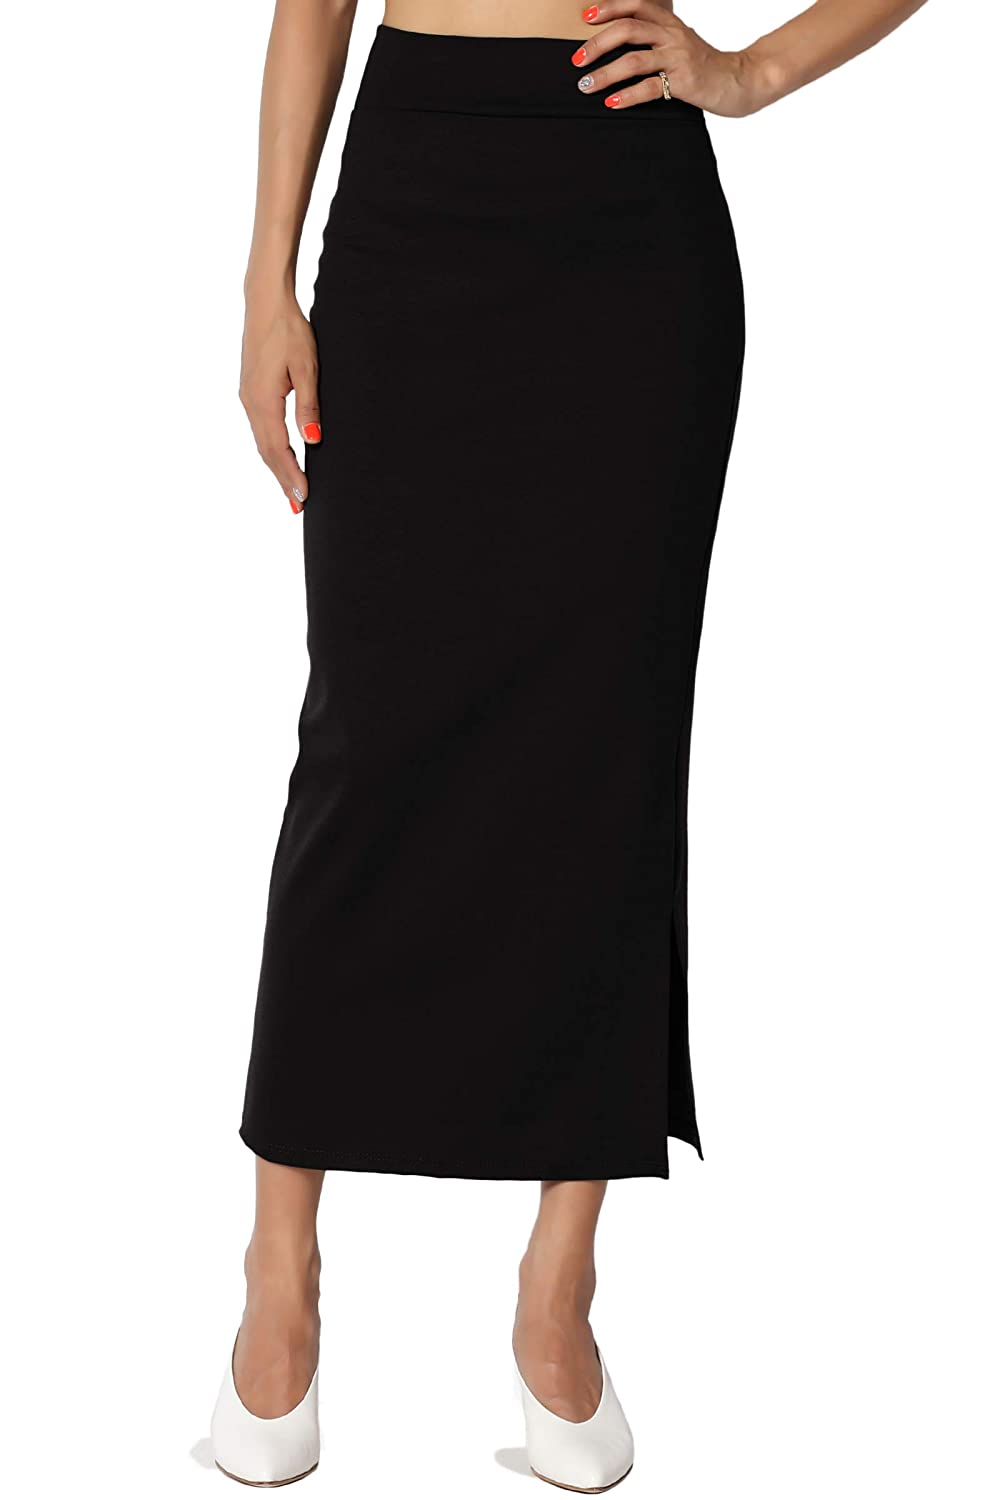 9a326f77ede TheMogan S~3XL High Waist Stretch Ponte Knit Mid Calf Knee Length Pencil Skirt  at Amazon Women s Clothing store